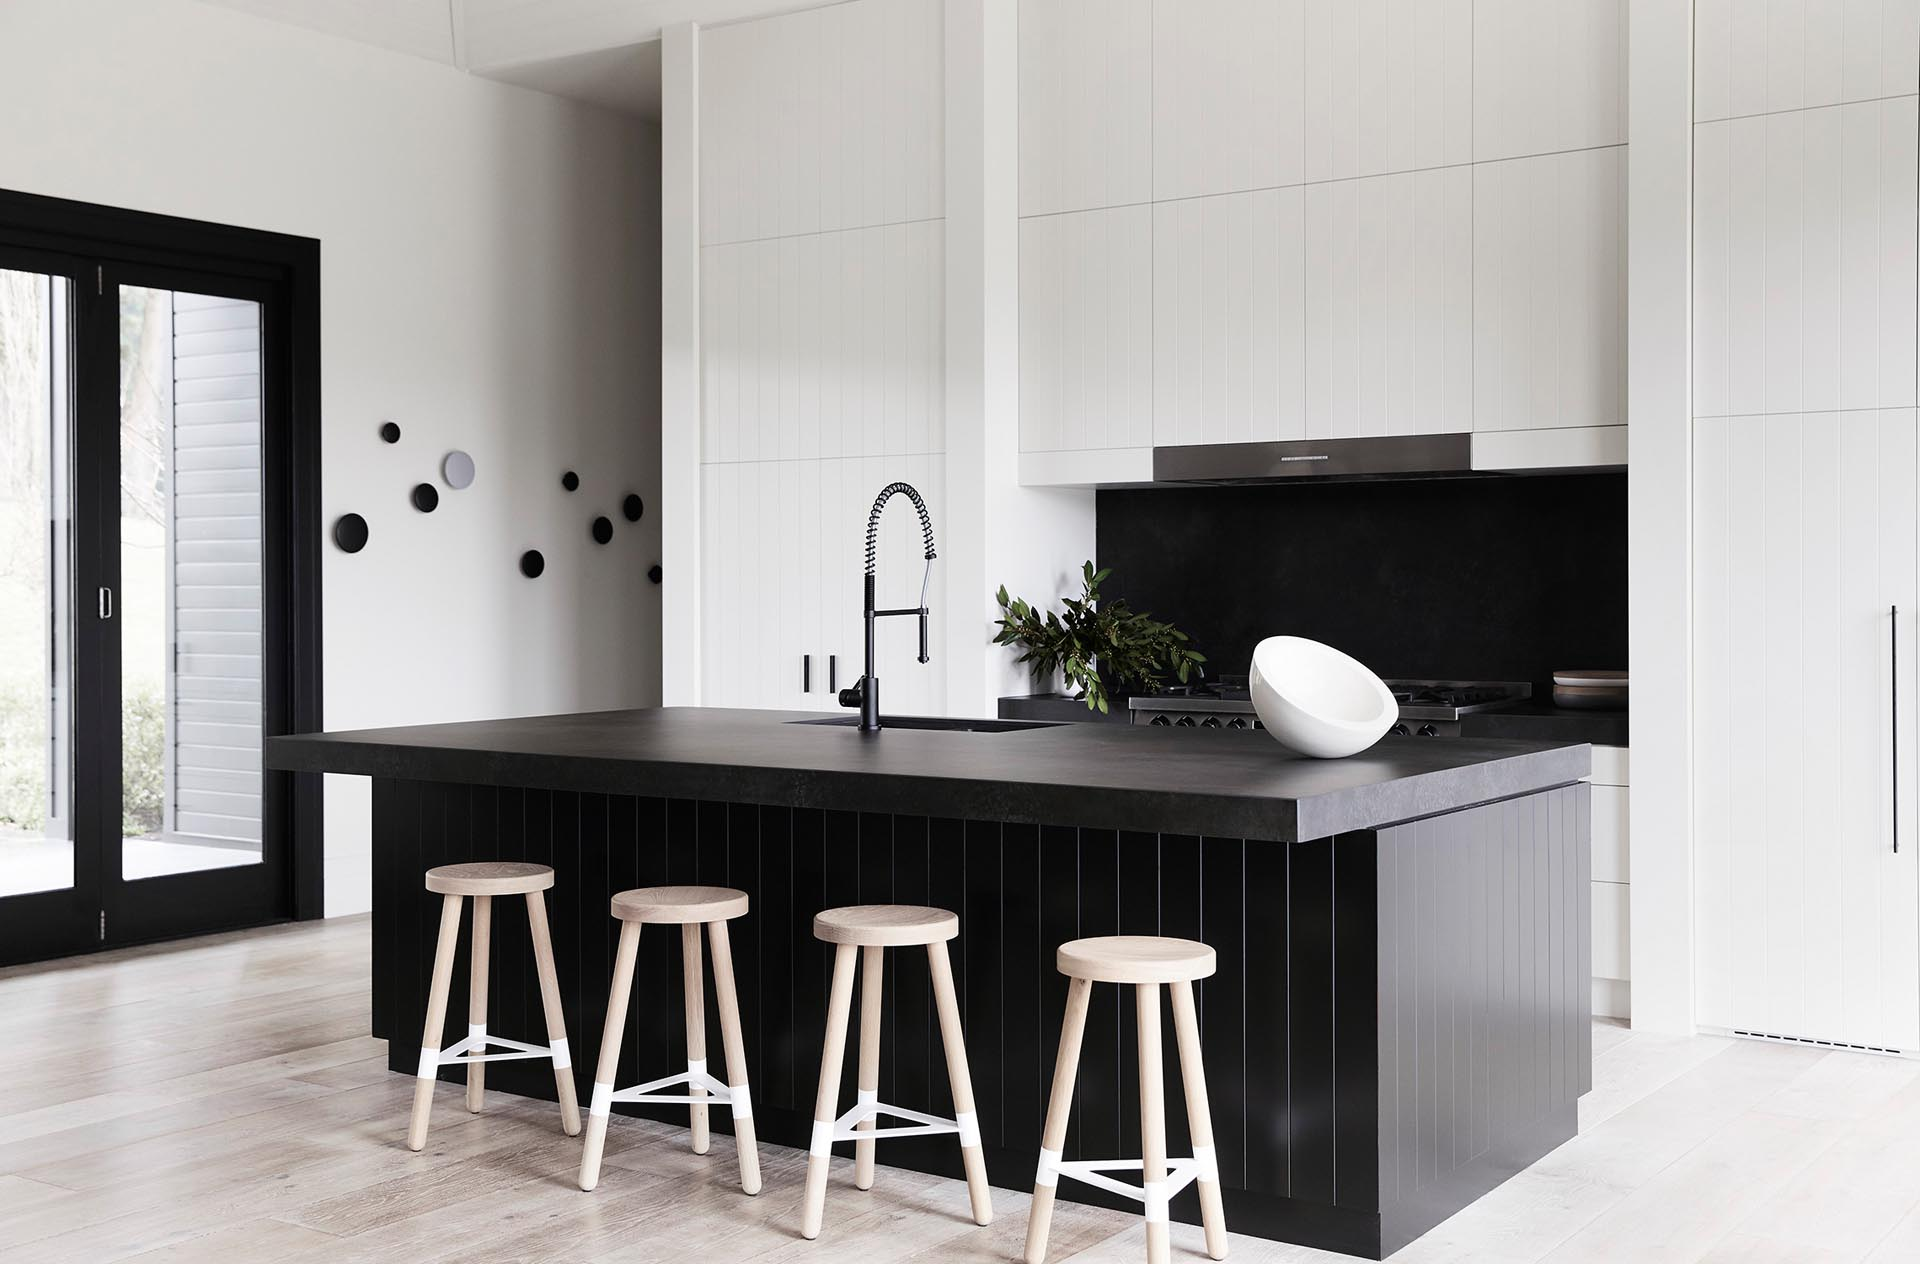 In this modern kitchen, there's minimalist white cabinets with integrated appliances, as well as a large black island that measures in at almost 10 feet (3m), and includes a black stone countertop that overhangs to provide room for seating.